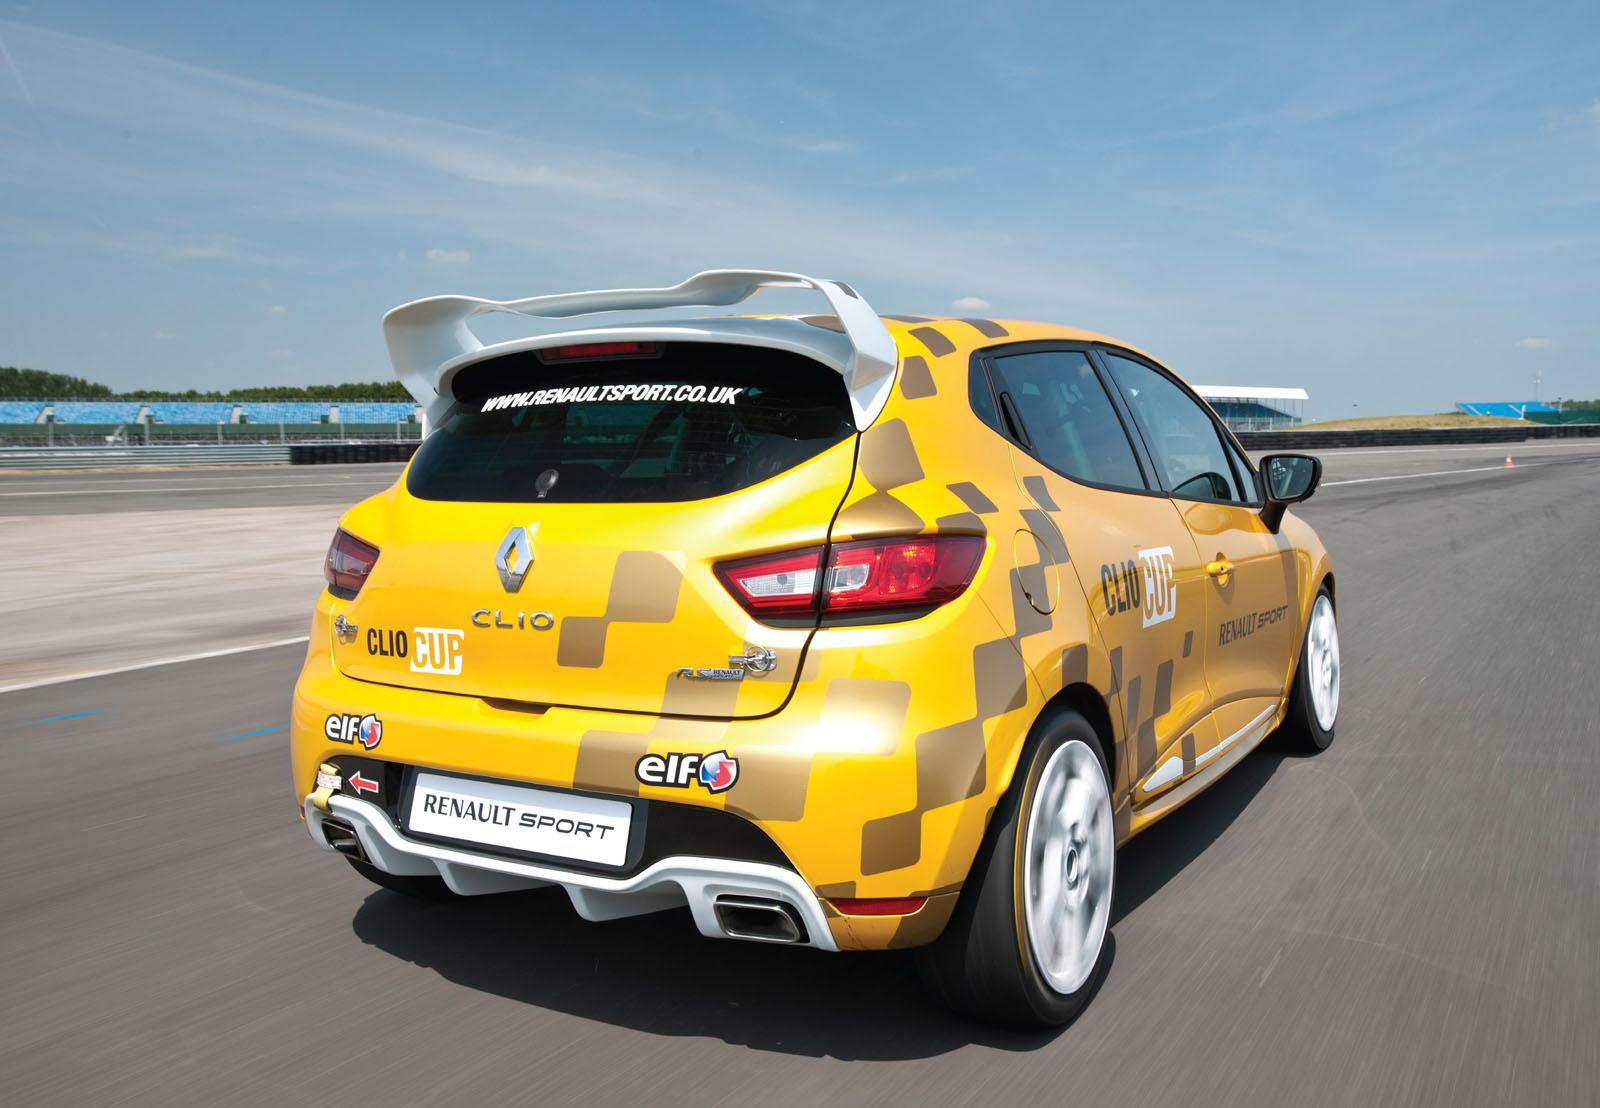 renault cars news 2014 clio cup. Black Bedroom Furniture Sets. Home Design Ideas